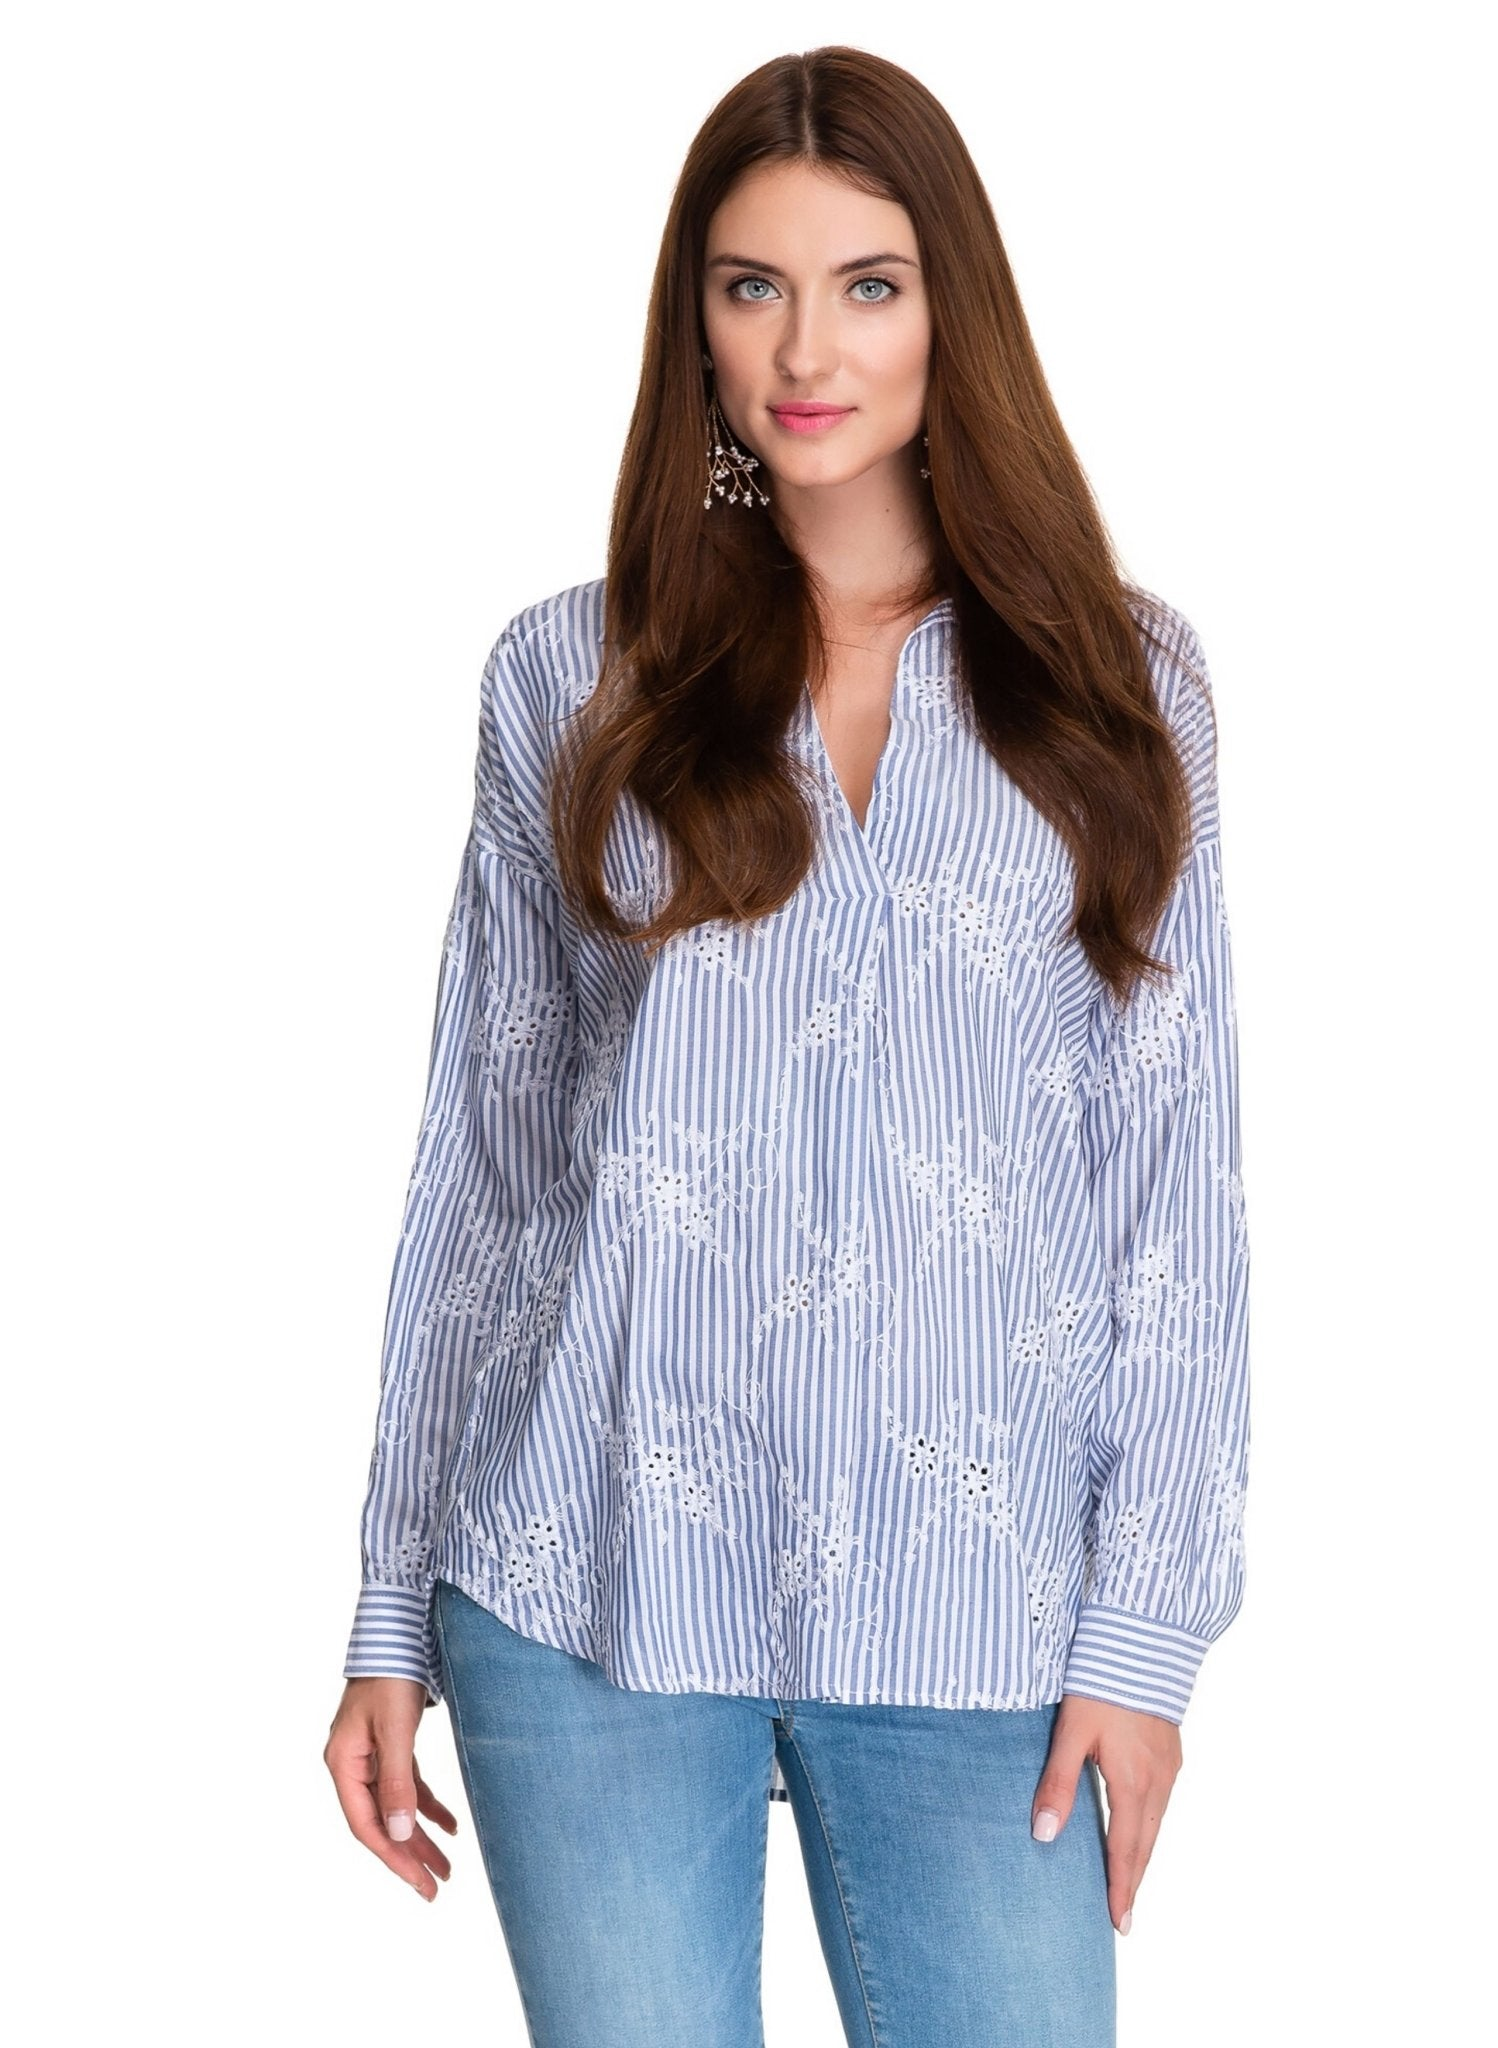 Egle Maternity Shirt - Mums and Bumps